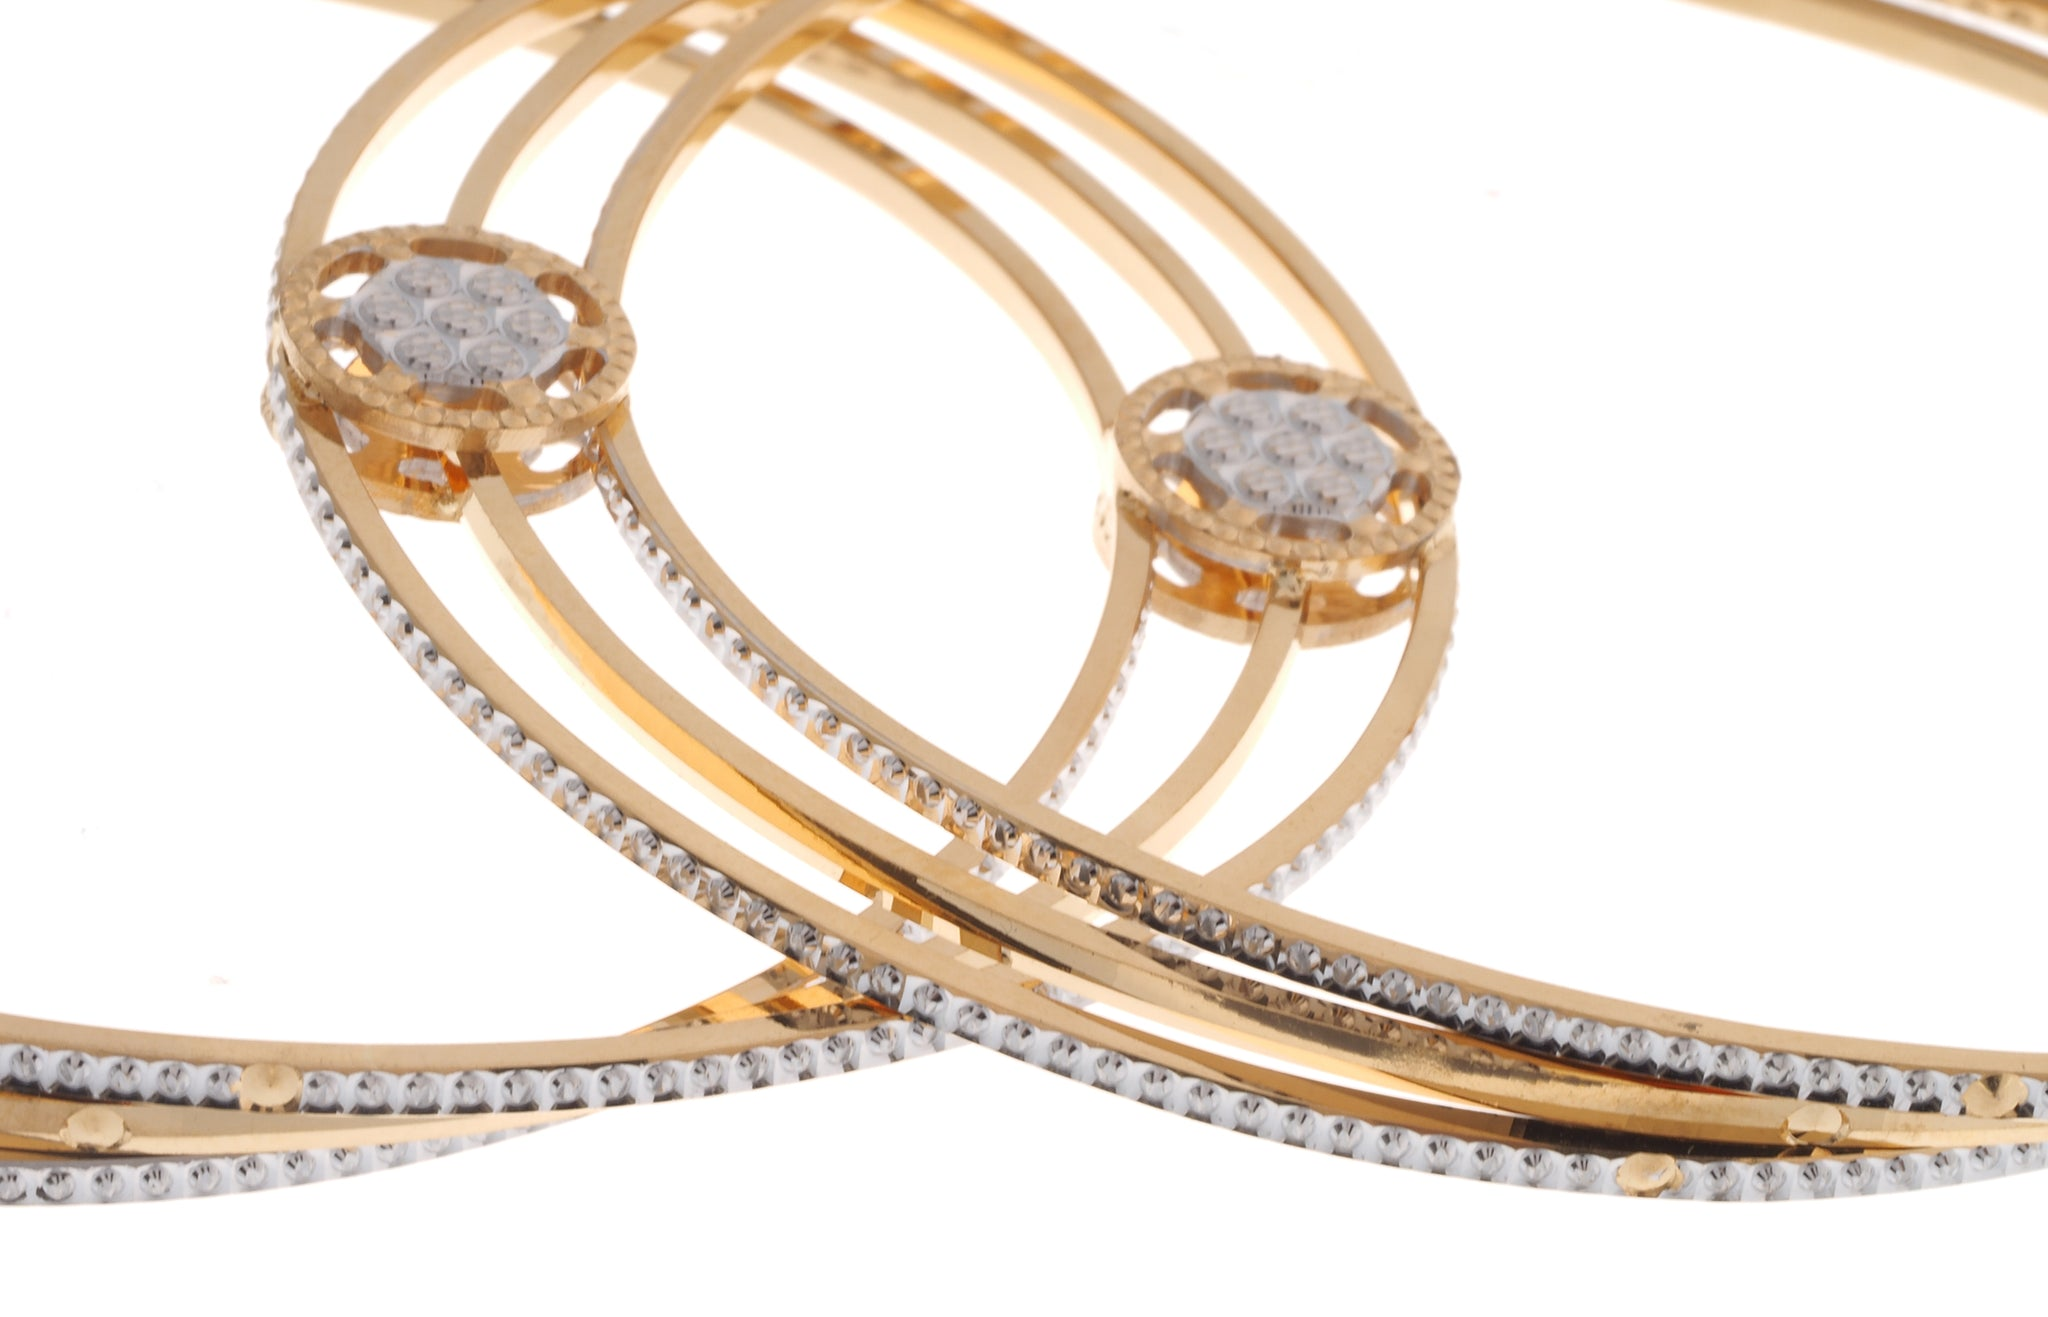 22ct Gold Bangles with Rhodium Design B-6929